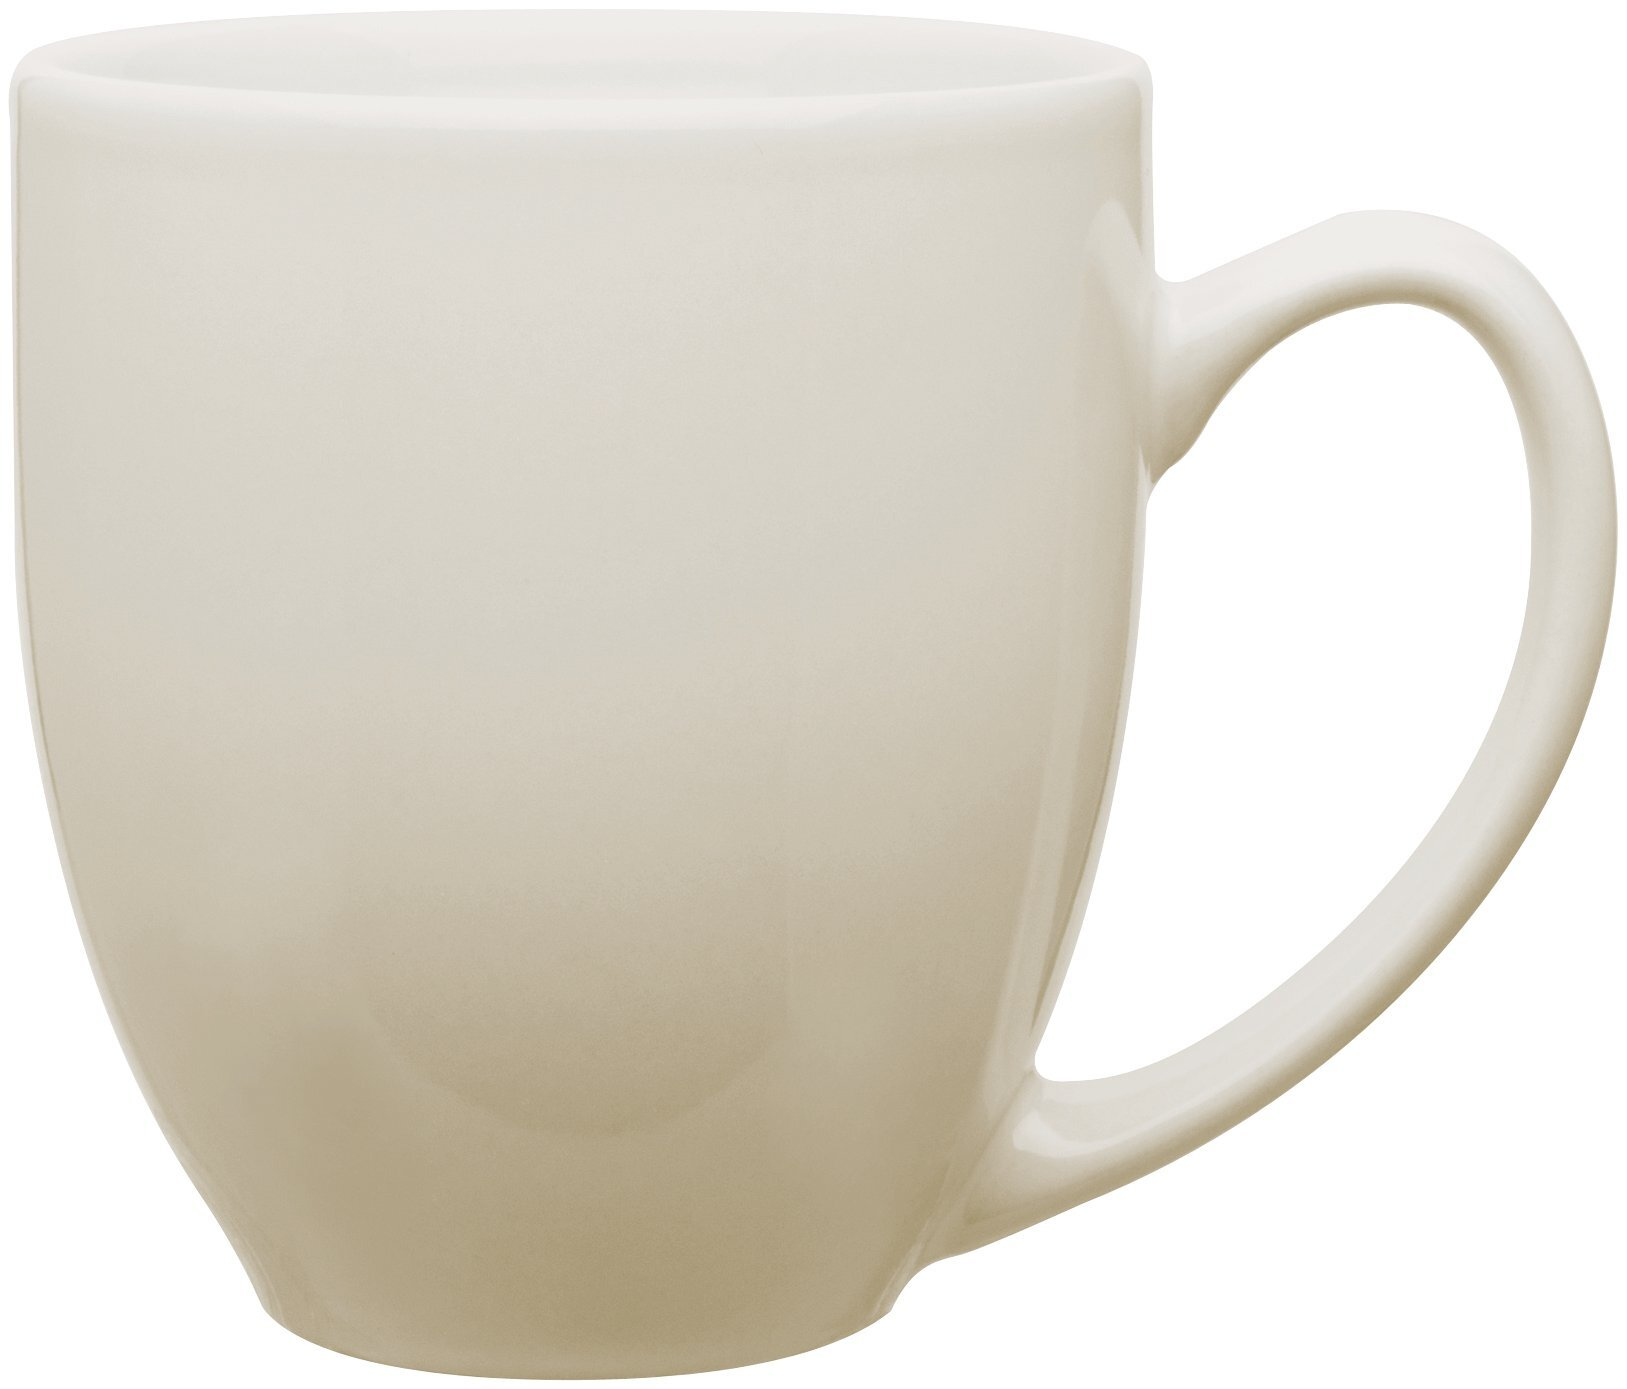 Glossy Ceramic Bistro Mug, 15 oz. - White & Natural